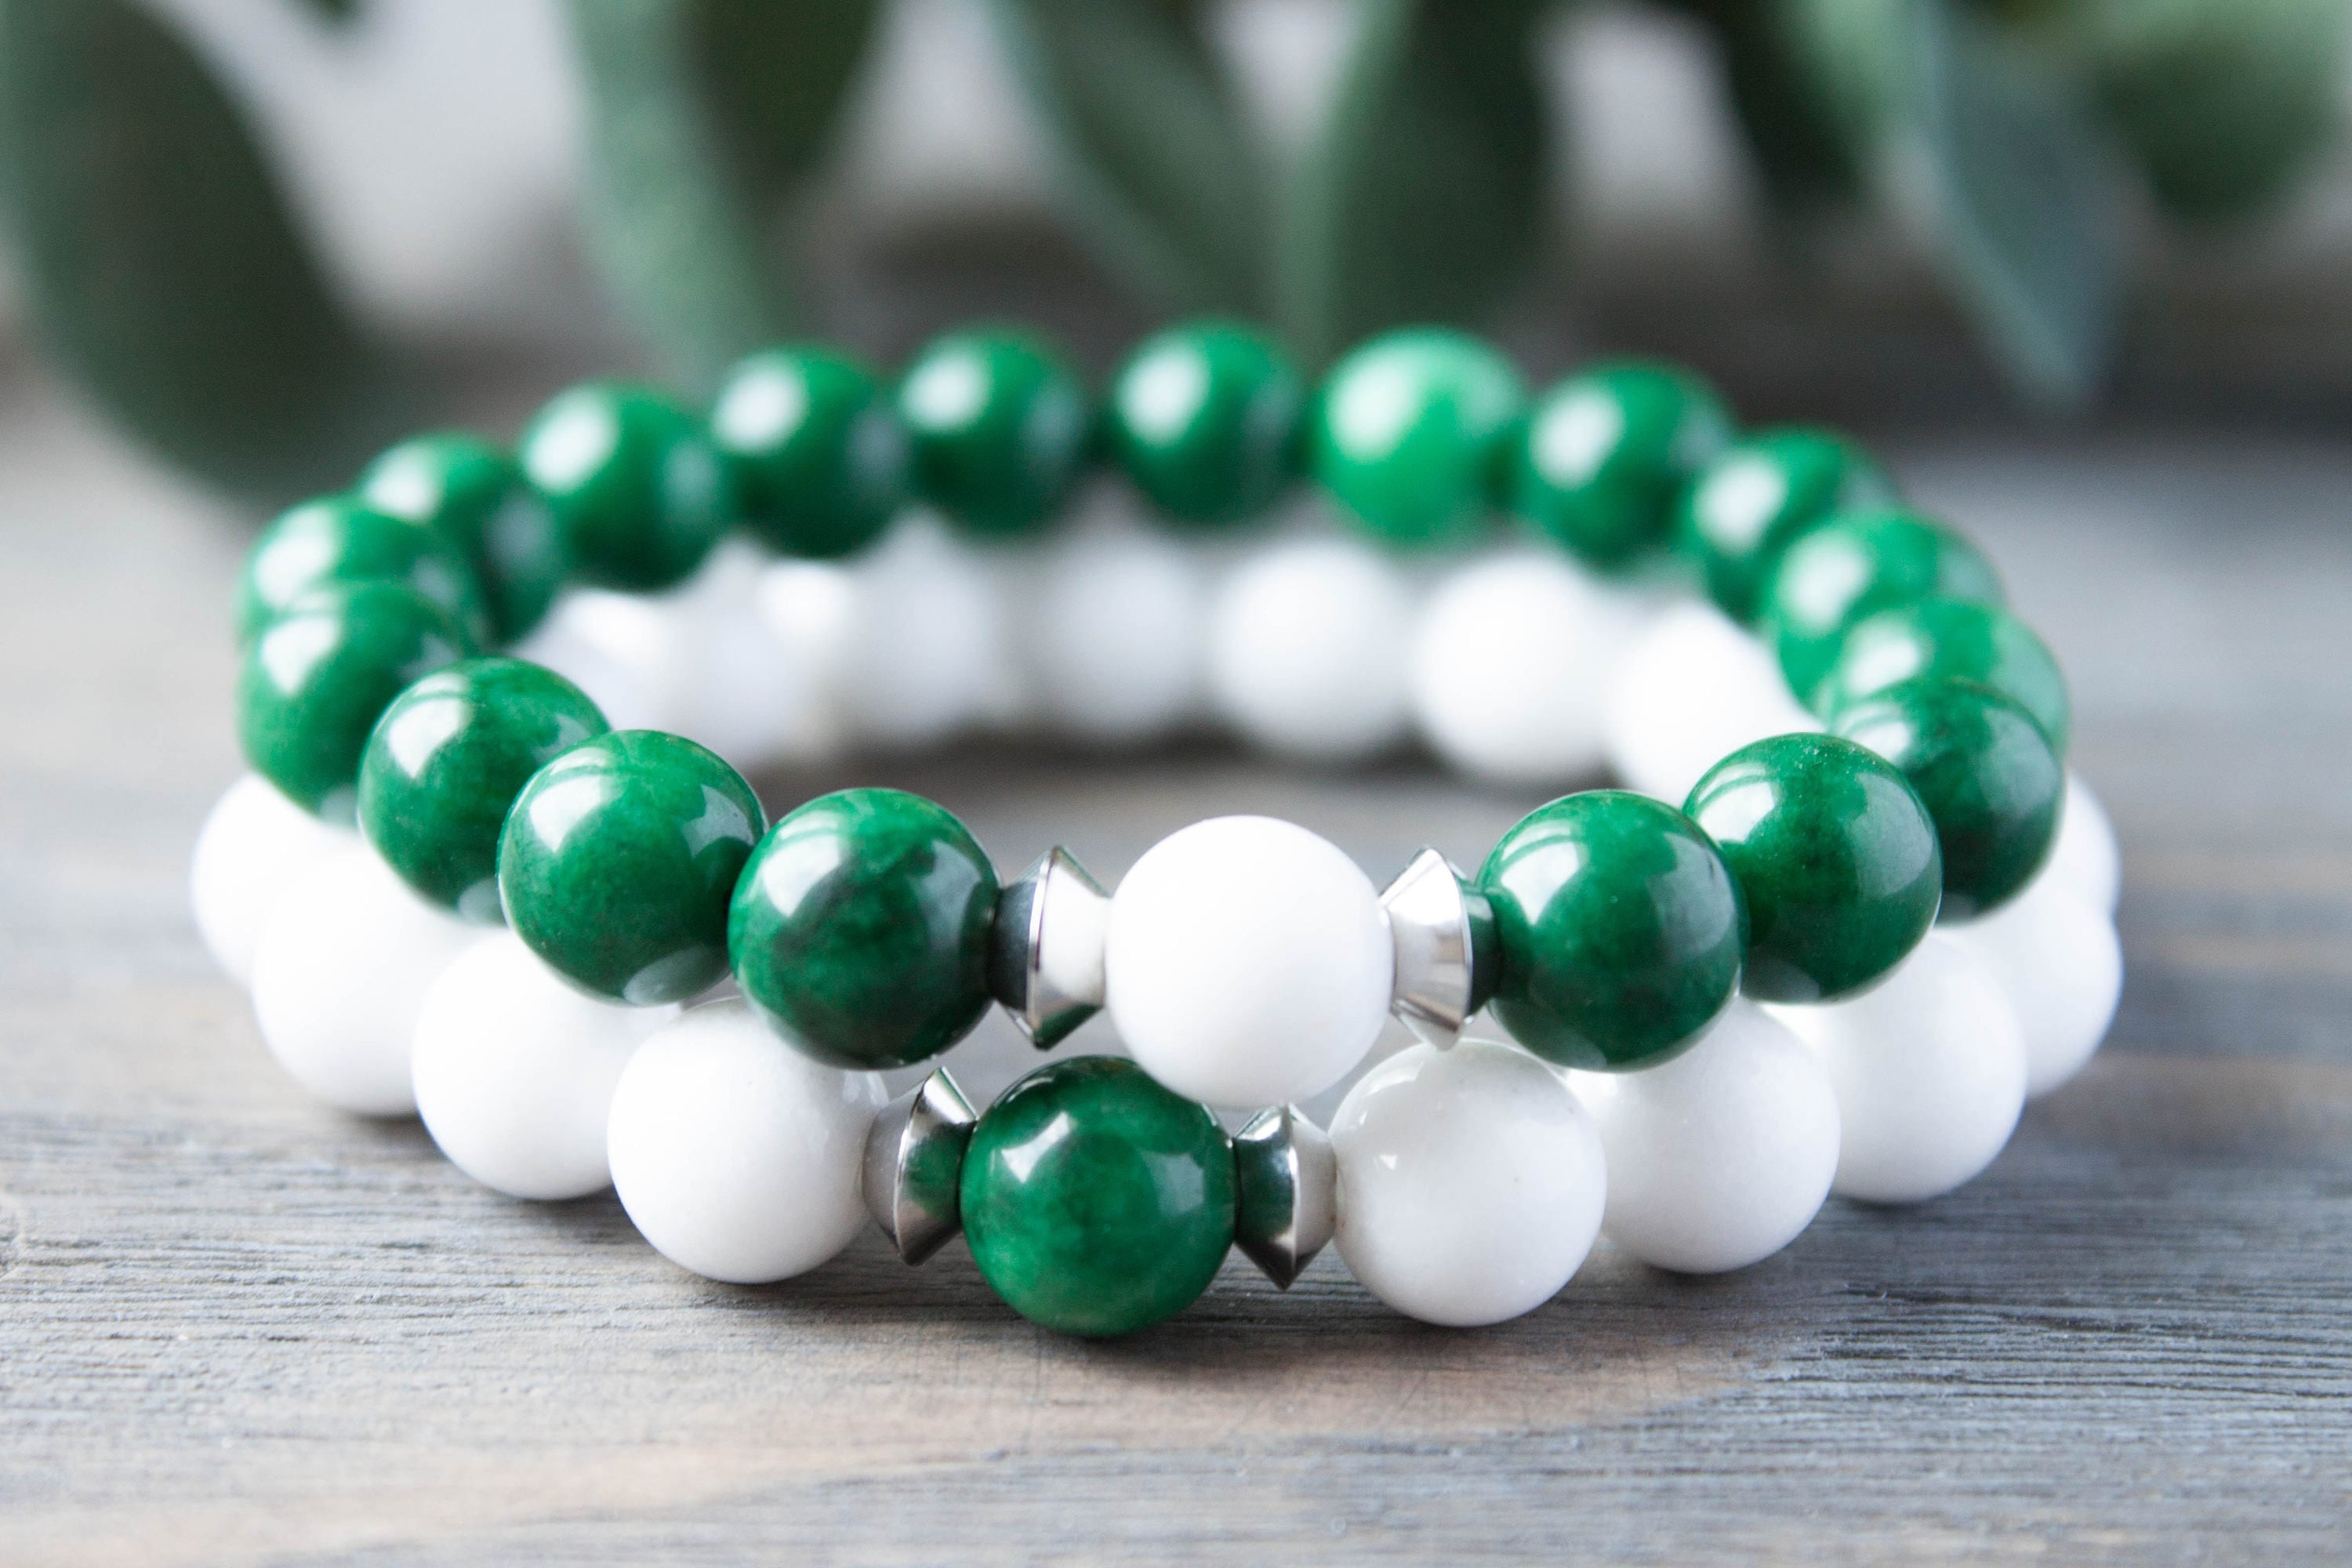 products lastylerush bracelet erimish mul stack la at shop jewelry festival bracelets com b set jade